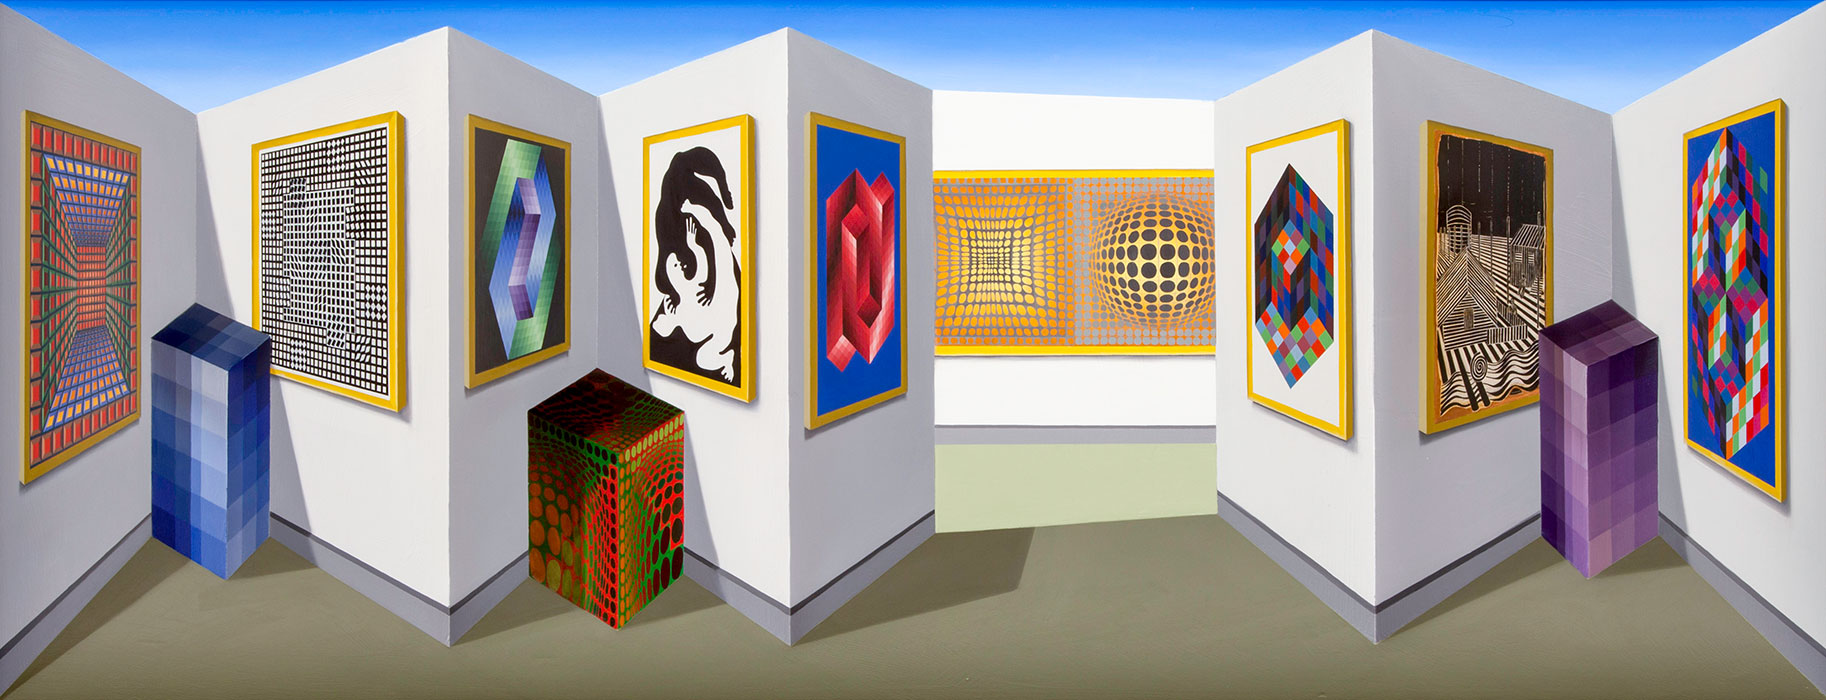 Vasareally <p>2016 | 47 x 123 x 19 cm / 18½ x 48⅜ x 7½ in</p>